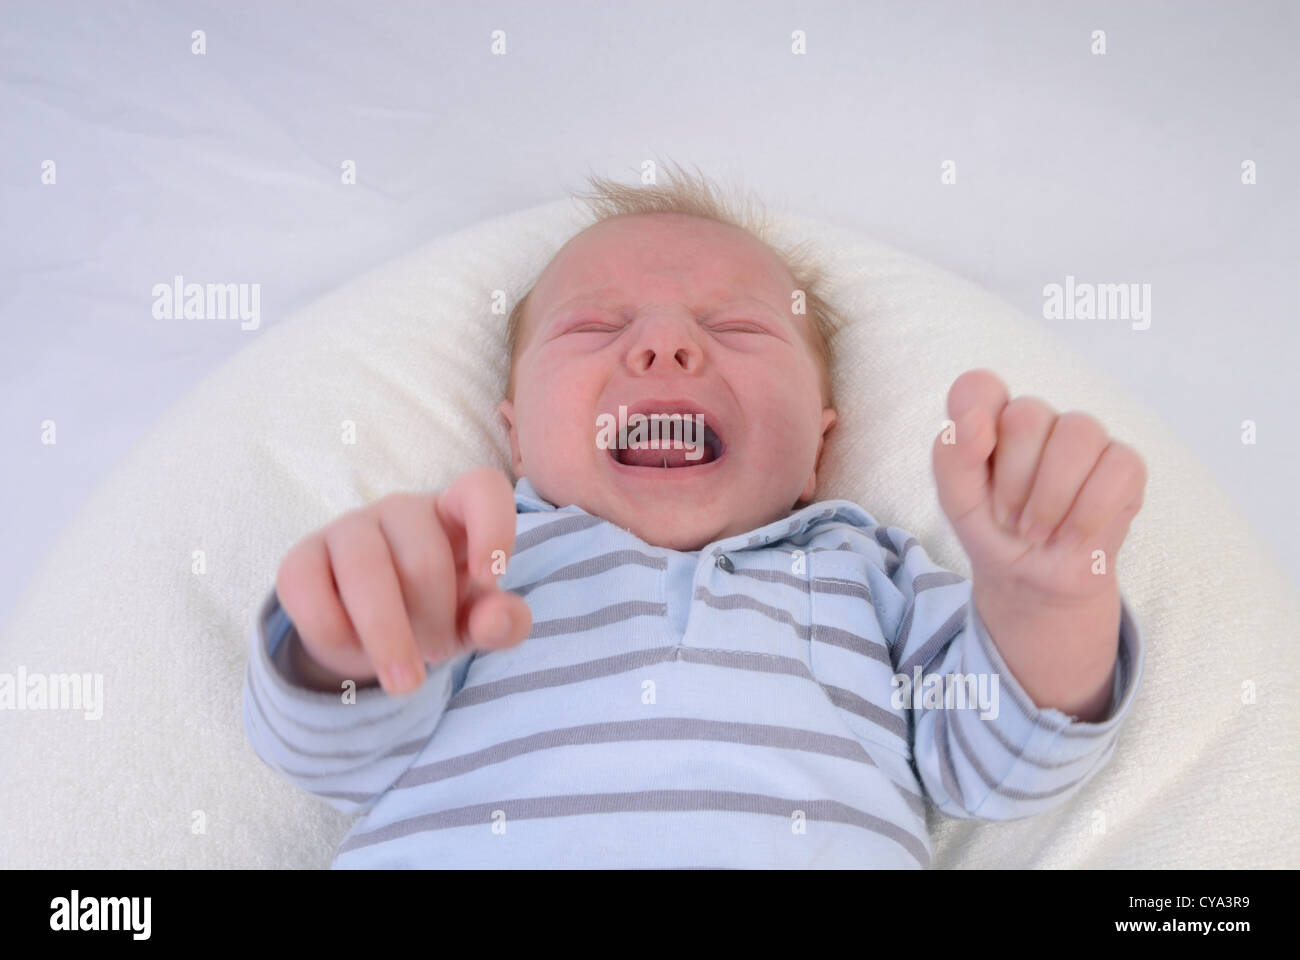 Young baby boy 6 weeks old crying, France - Stock Image